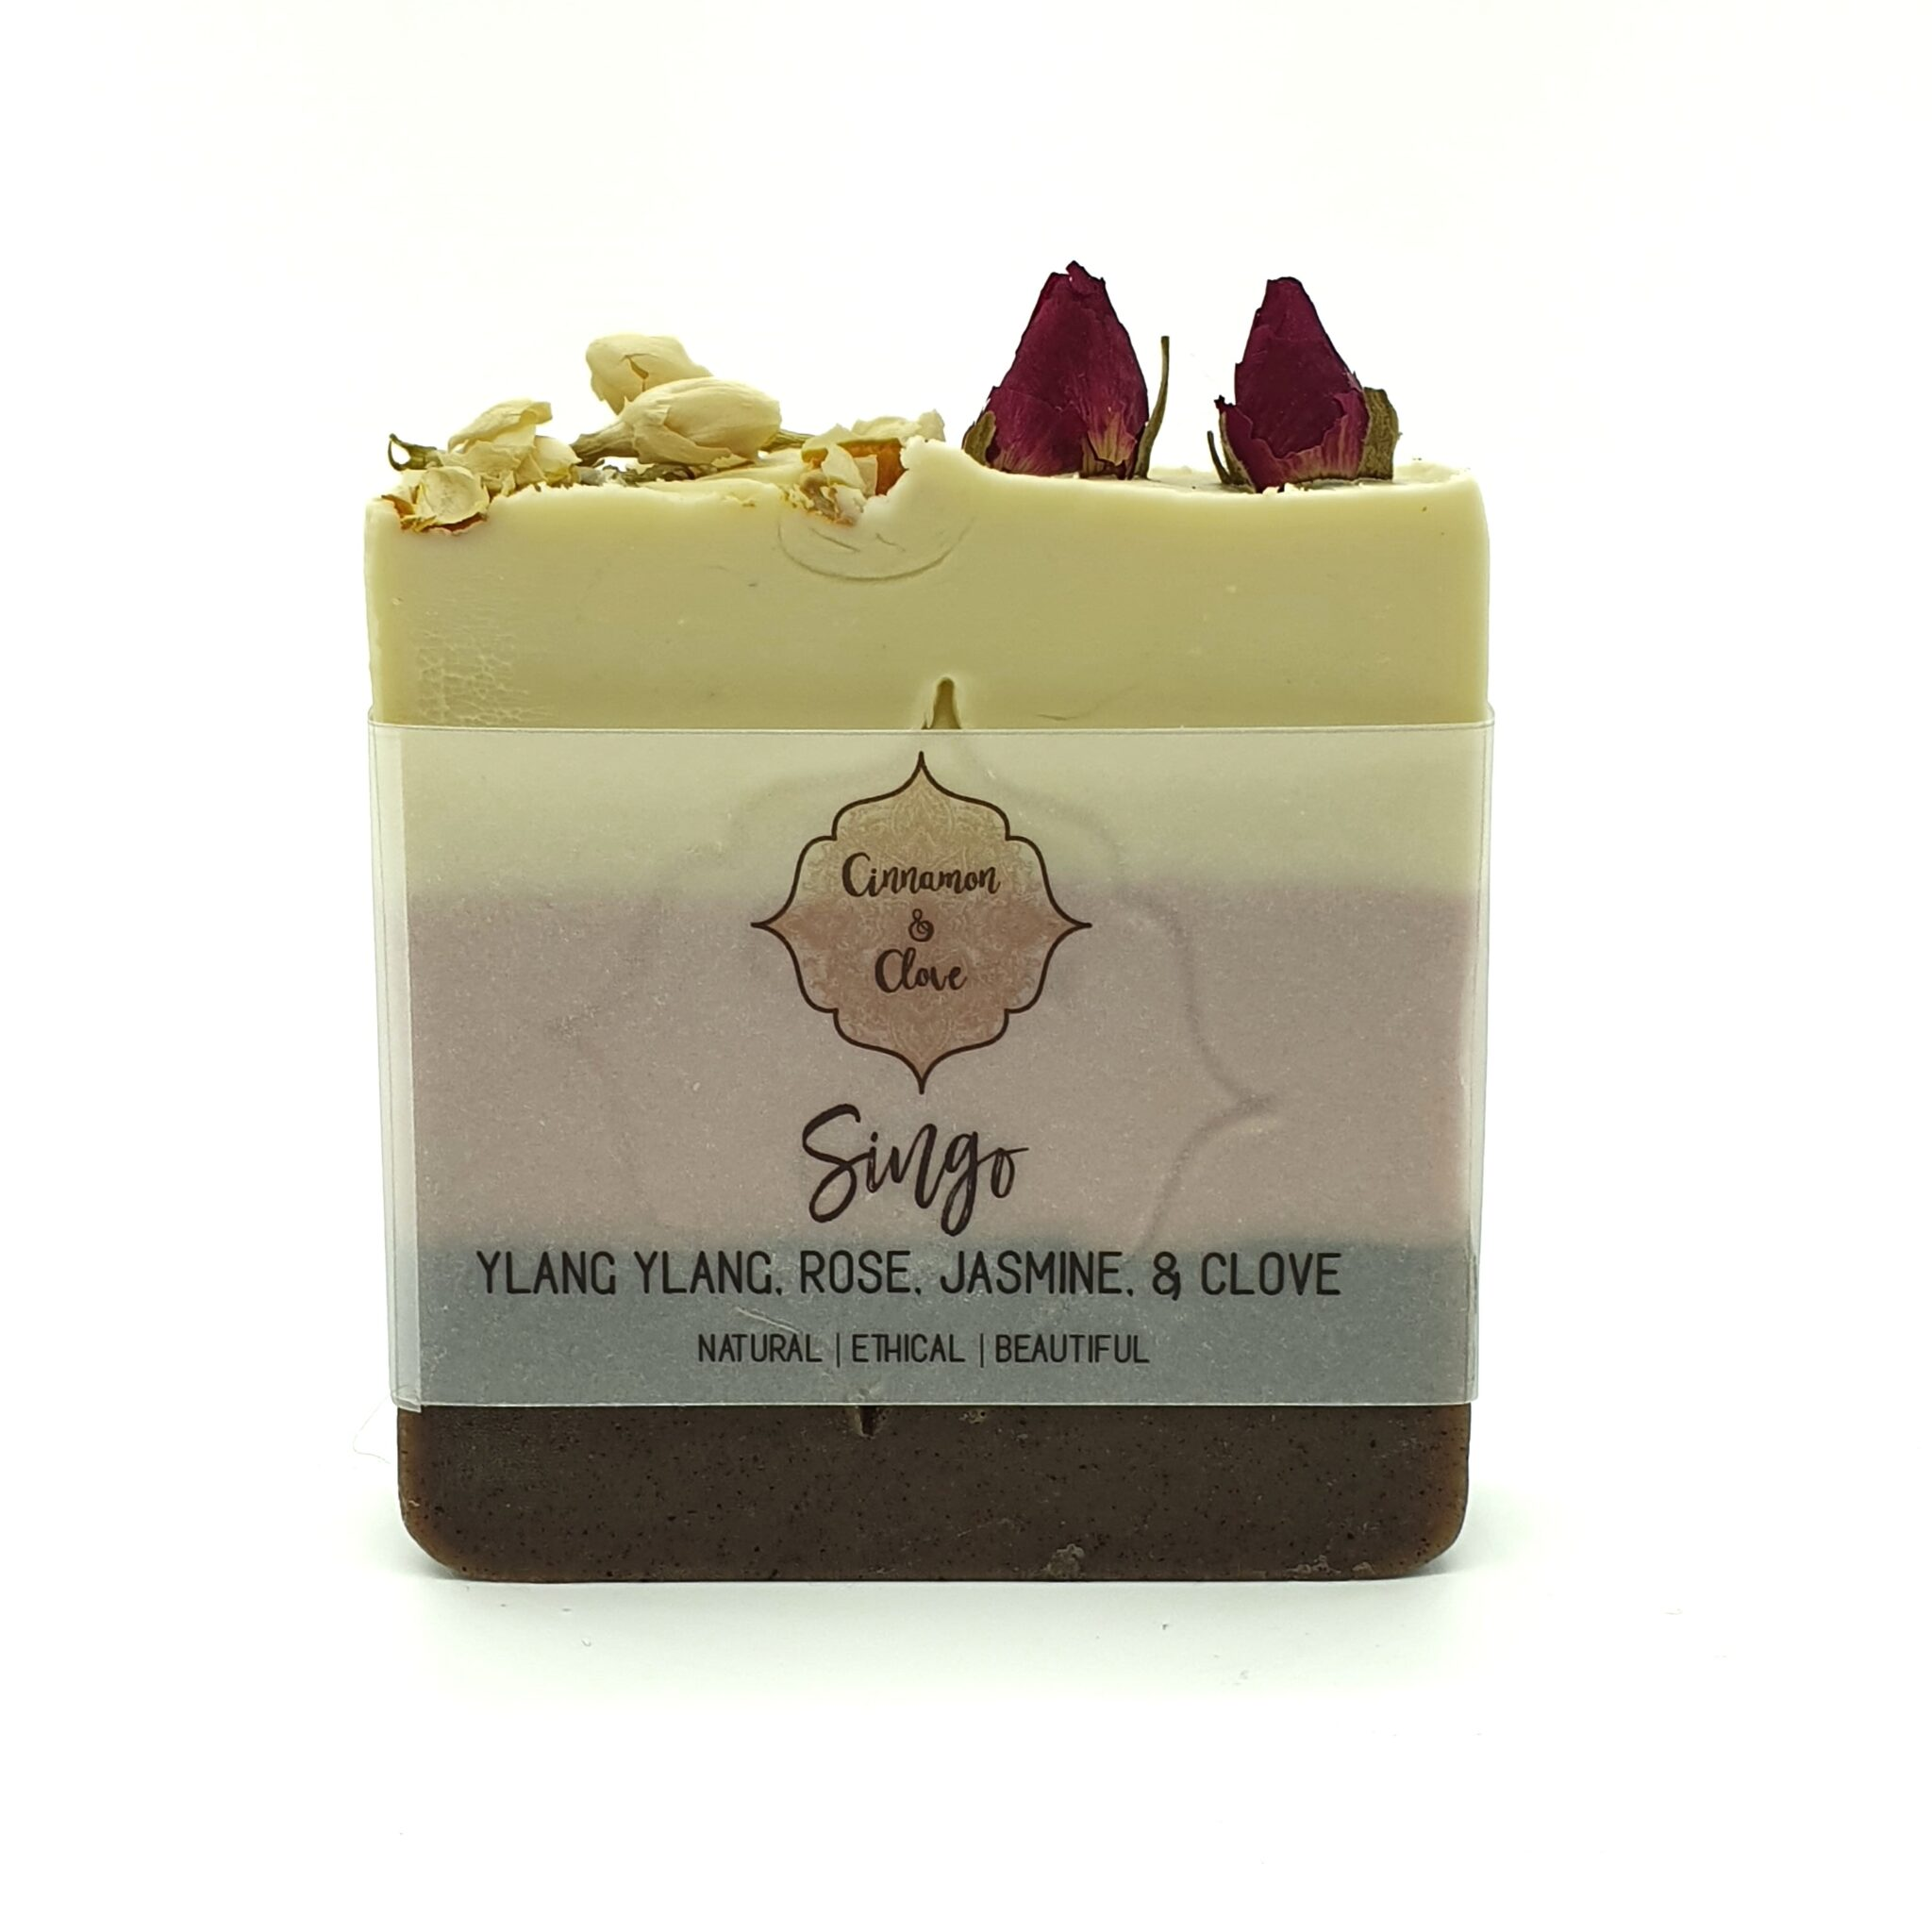 Singo – Handcrafted All Natural Artisan Soap By Cinnamon And Clove (Prahran)